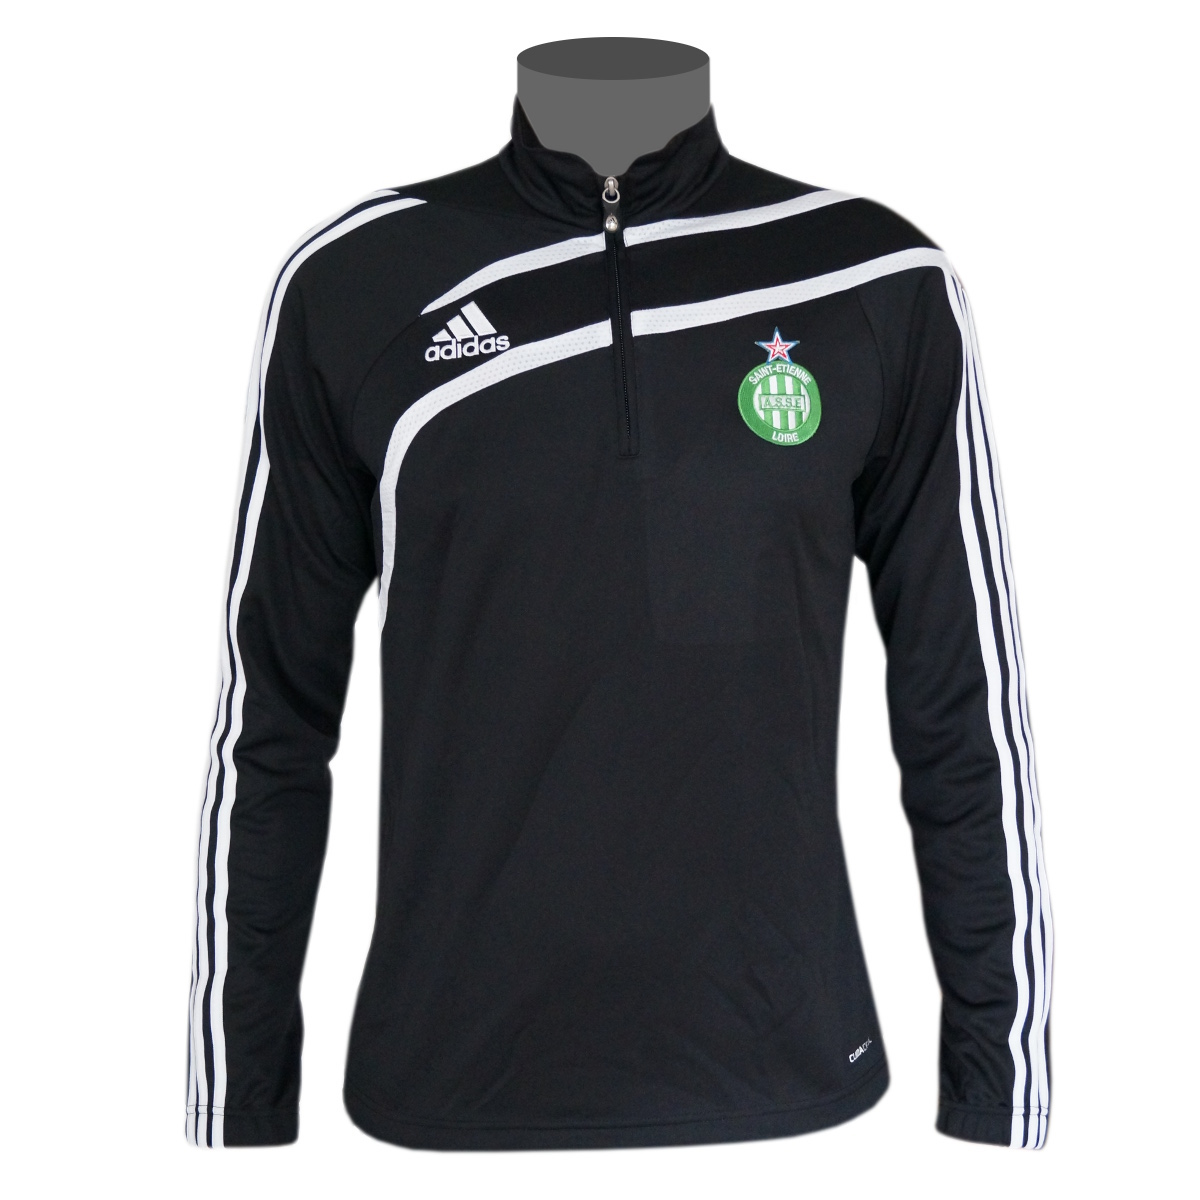 adidas as saint etienne sweatshirt herren sport pullover schwarz ebay. Black Bedroom Furniture Sets. Home Design Ideas